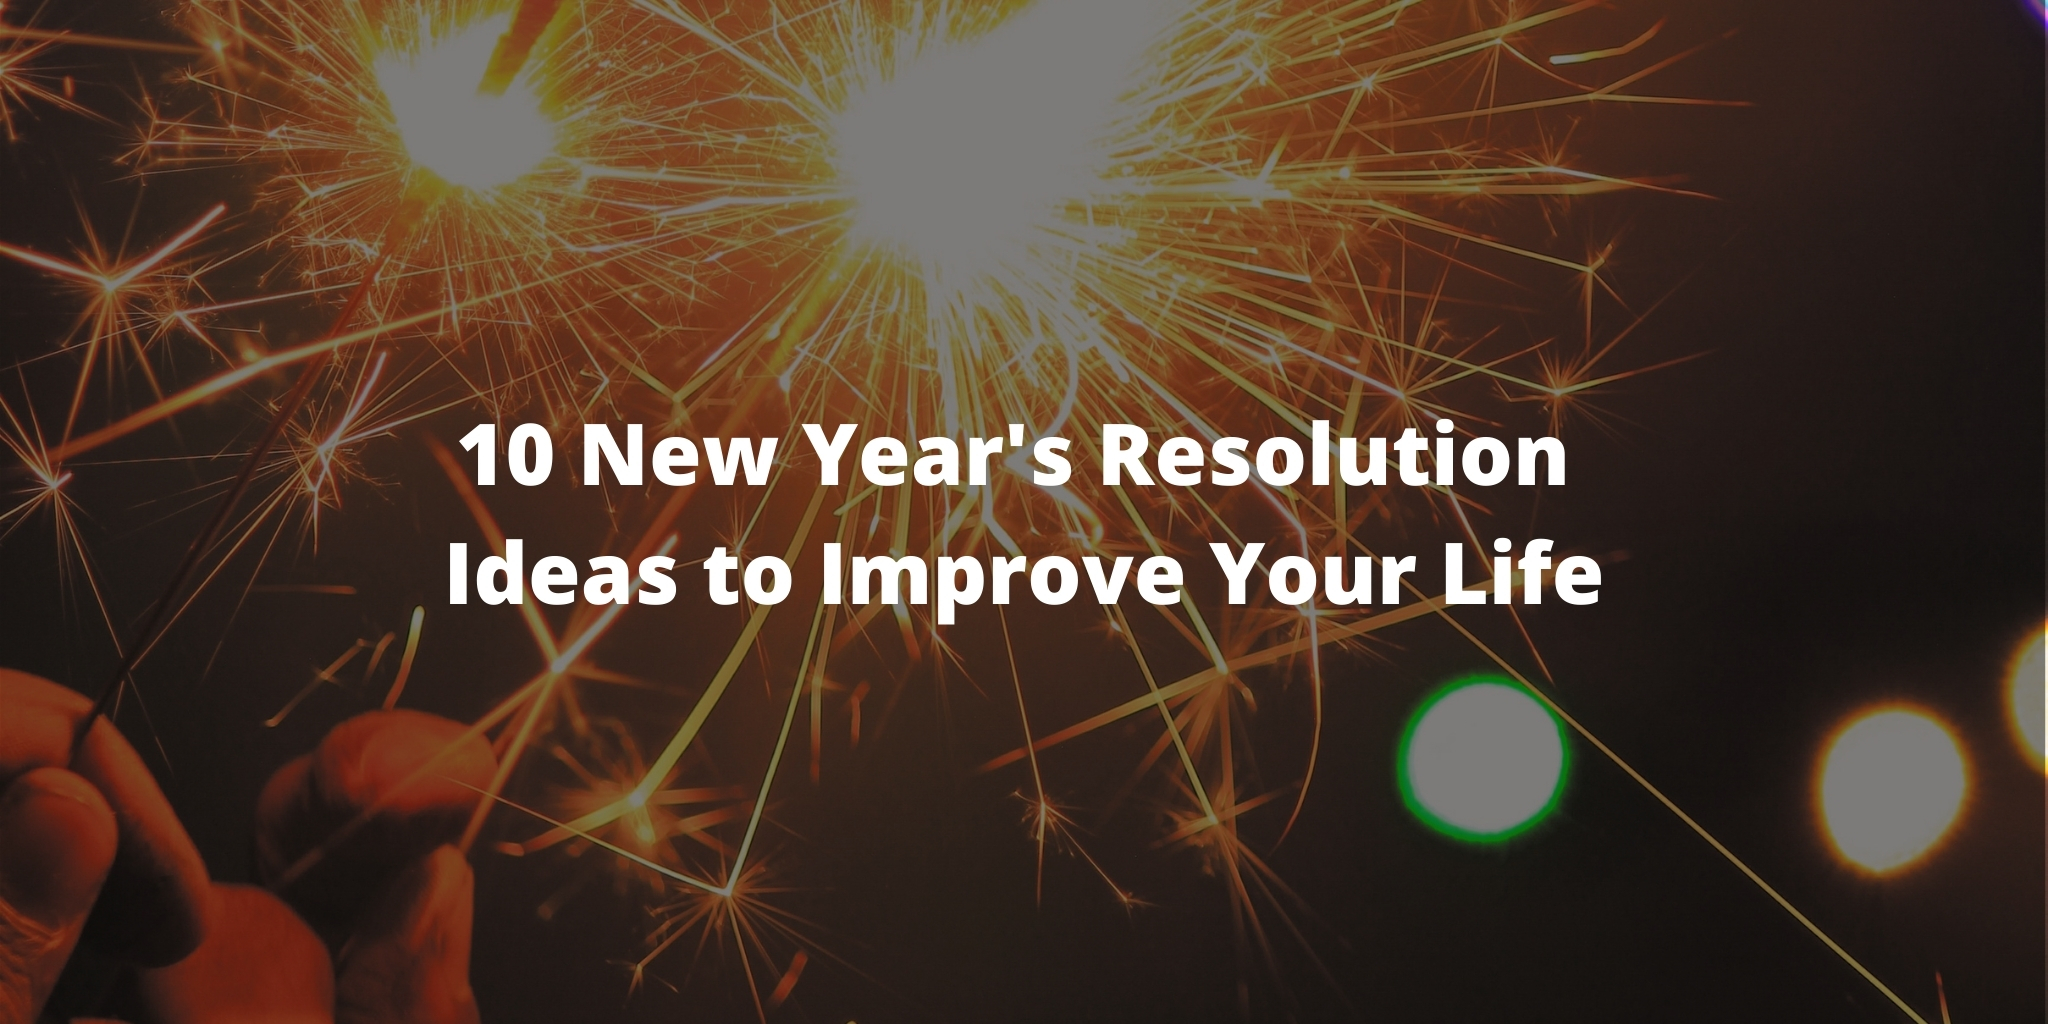 10 New Year's Resolution Ideas to Improve Your Life